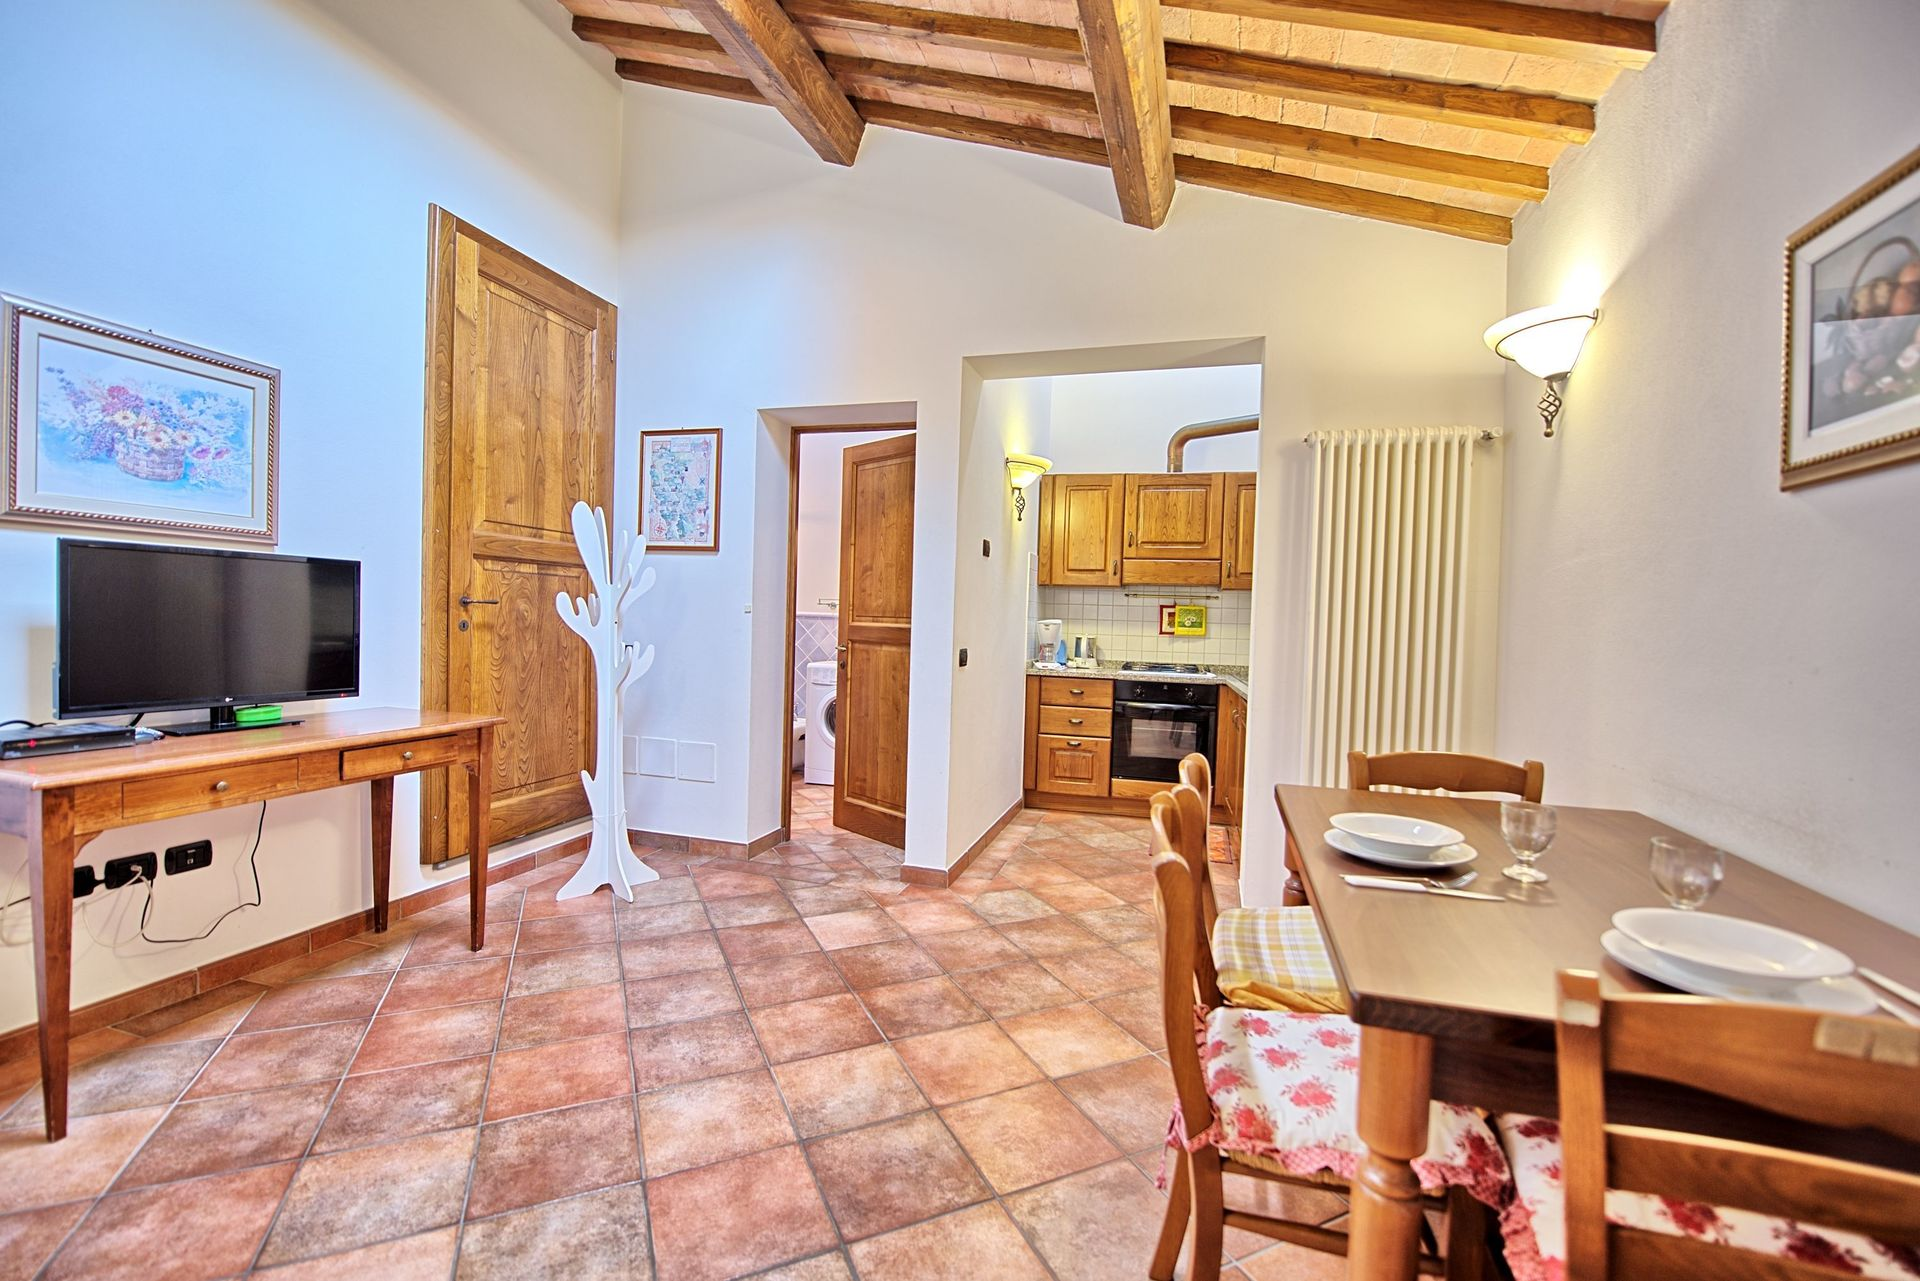 Beauty At Home Castelfiorentino certaldo: vacation rental that sleeps 10 people in 3